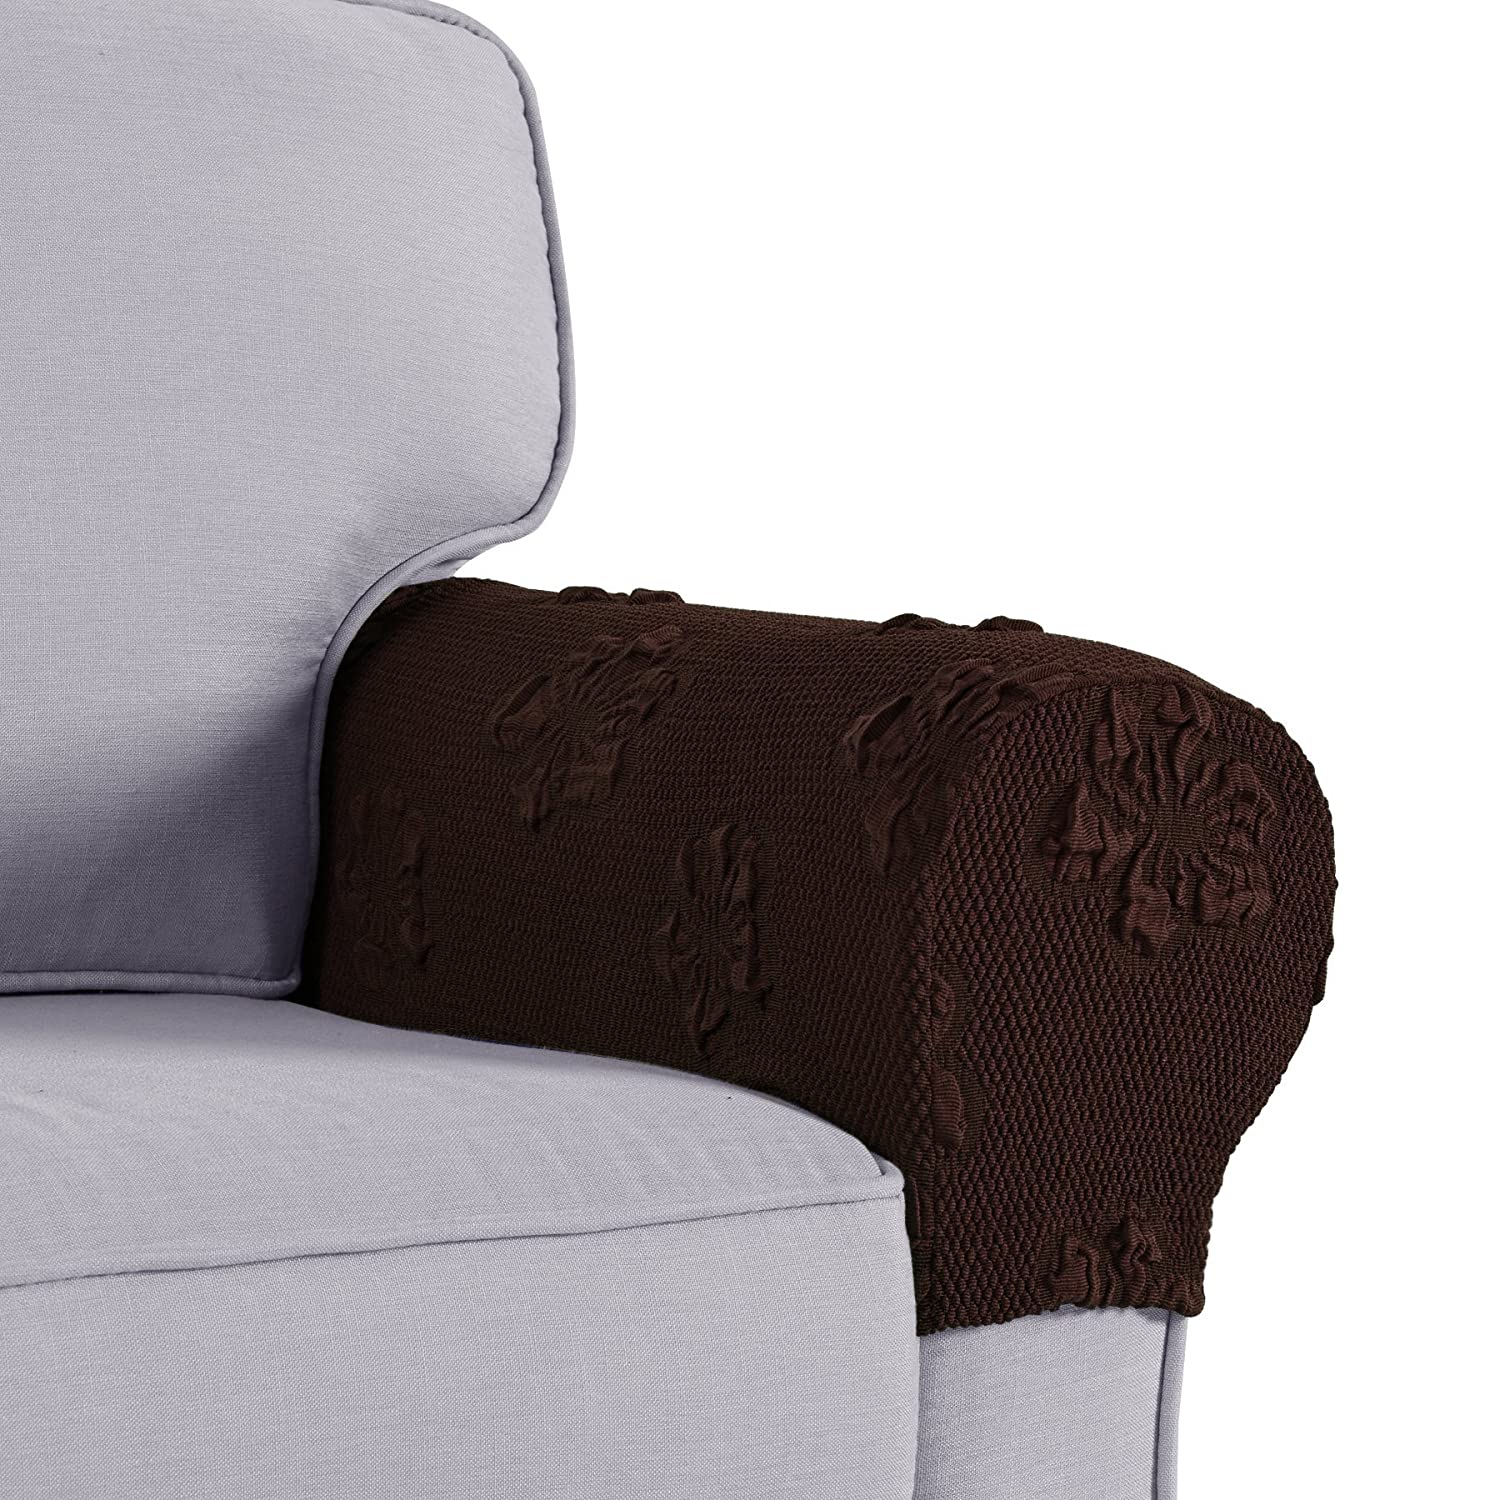 Joywell Spandex Stretch Armrest Covers Set of 2 (Coffee) LTD.